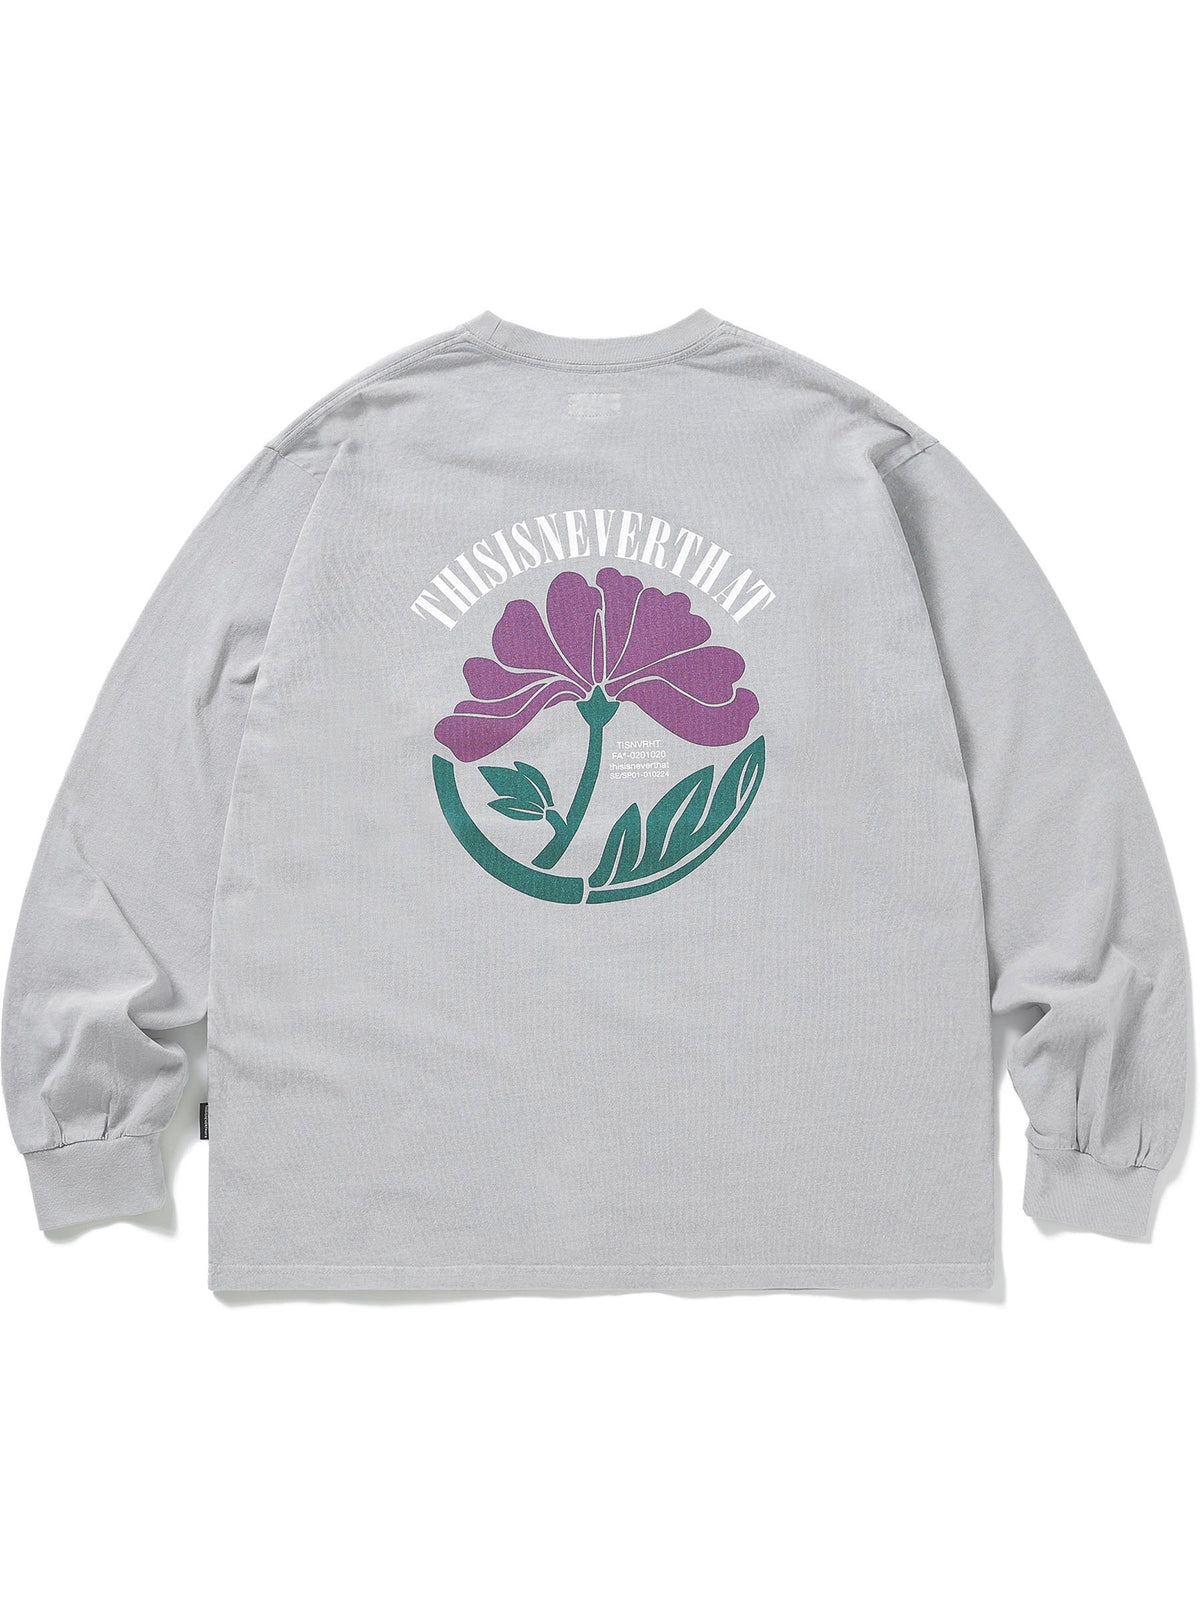 Overdyed Flower L/SL Top - thisisneverthat